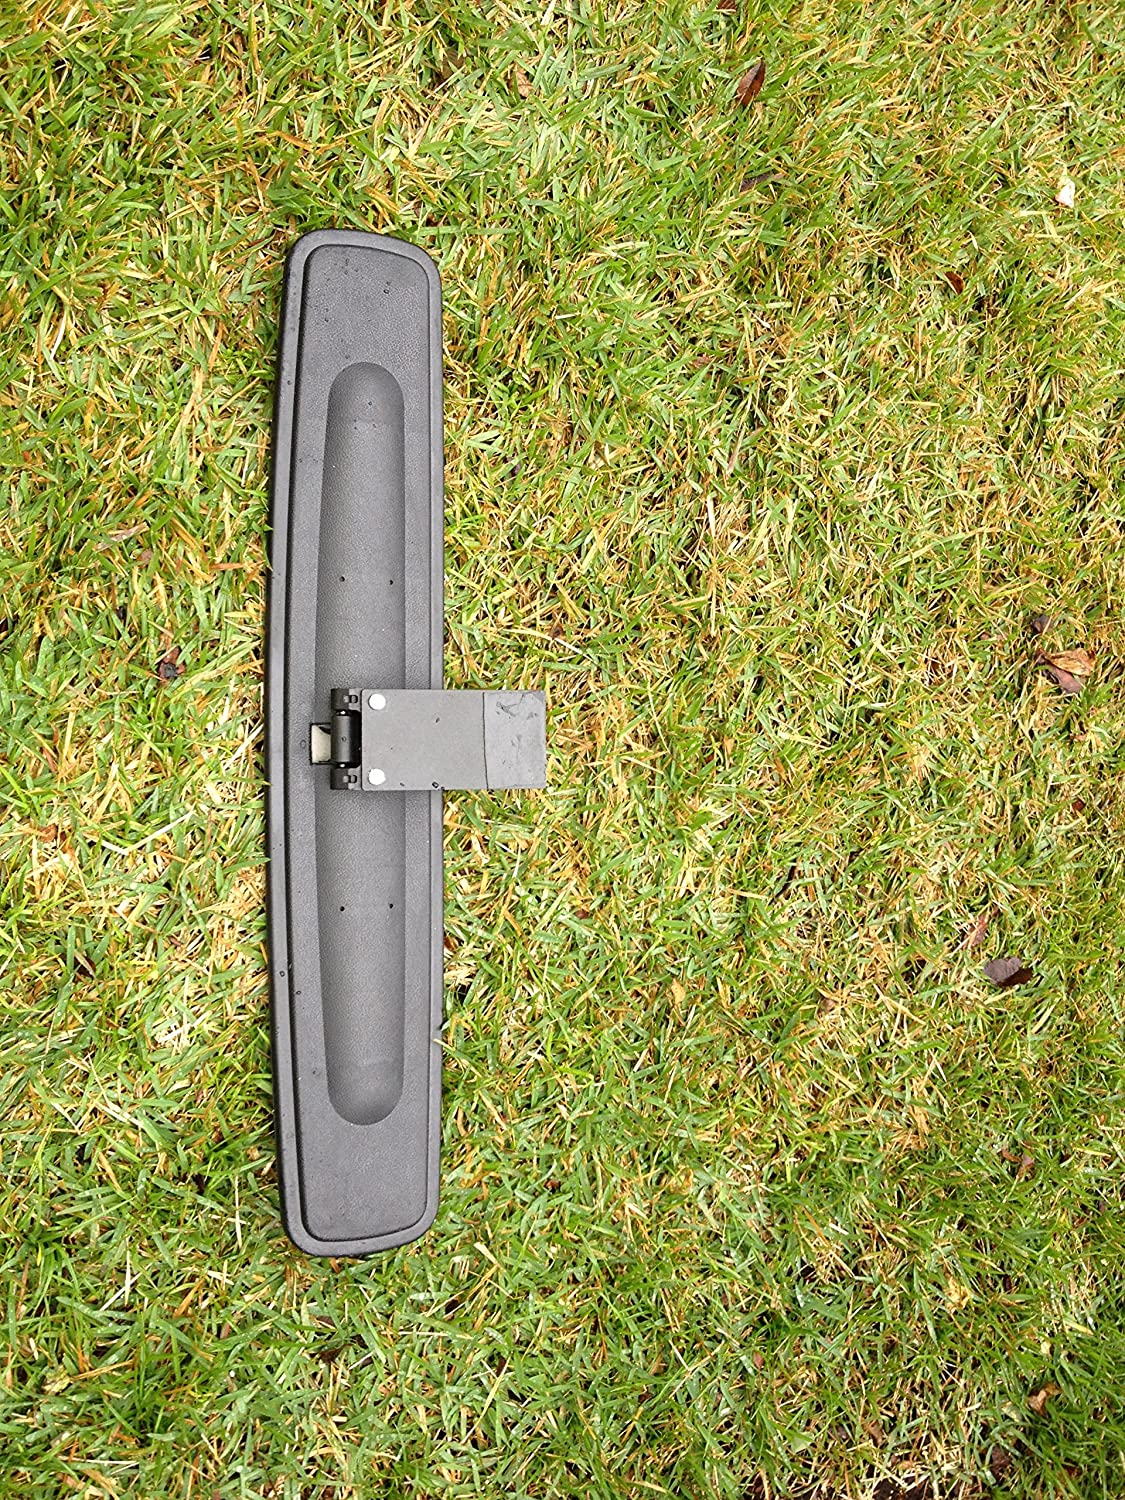 16.5 Extra Wide Panoramic Rear View Mirror for Forklifts; Universal Fit Big Buddy Team